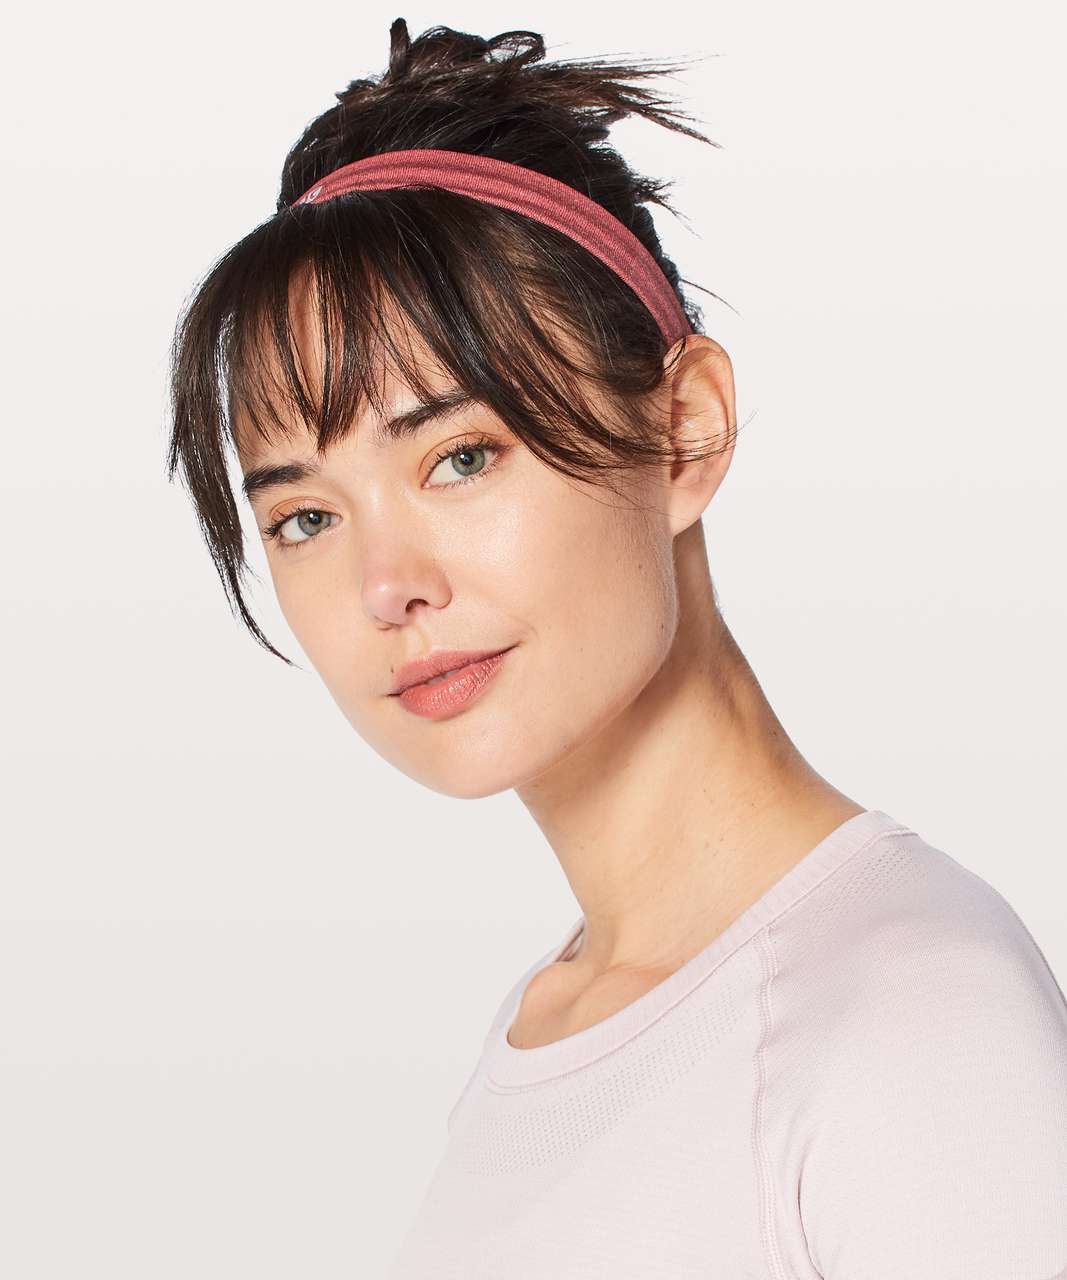 Lululemon Cardio Cross Trainer Headband - Persian Red / White